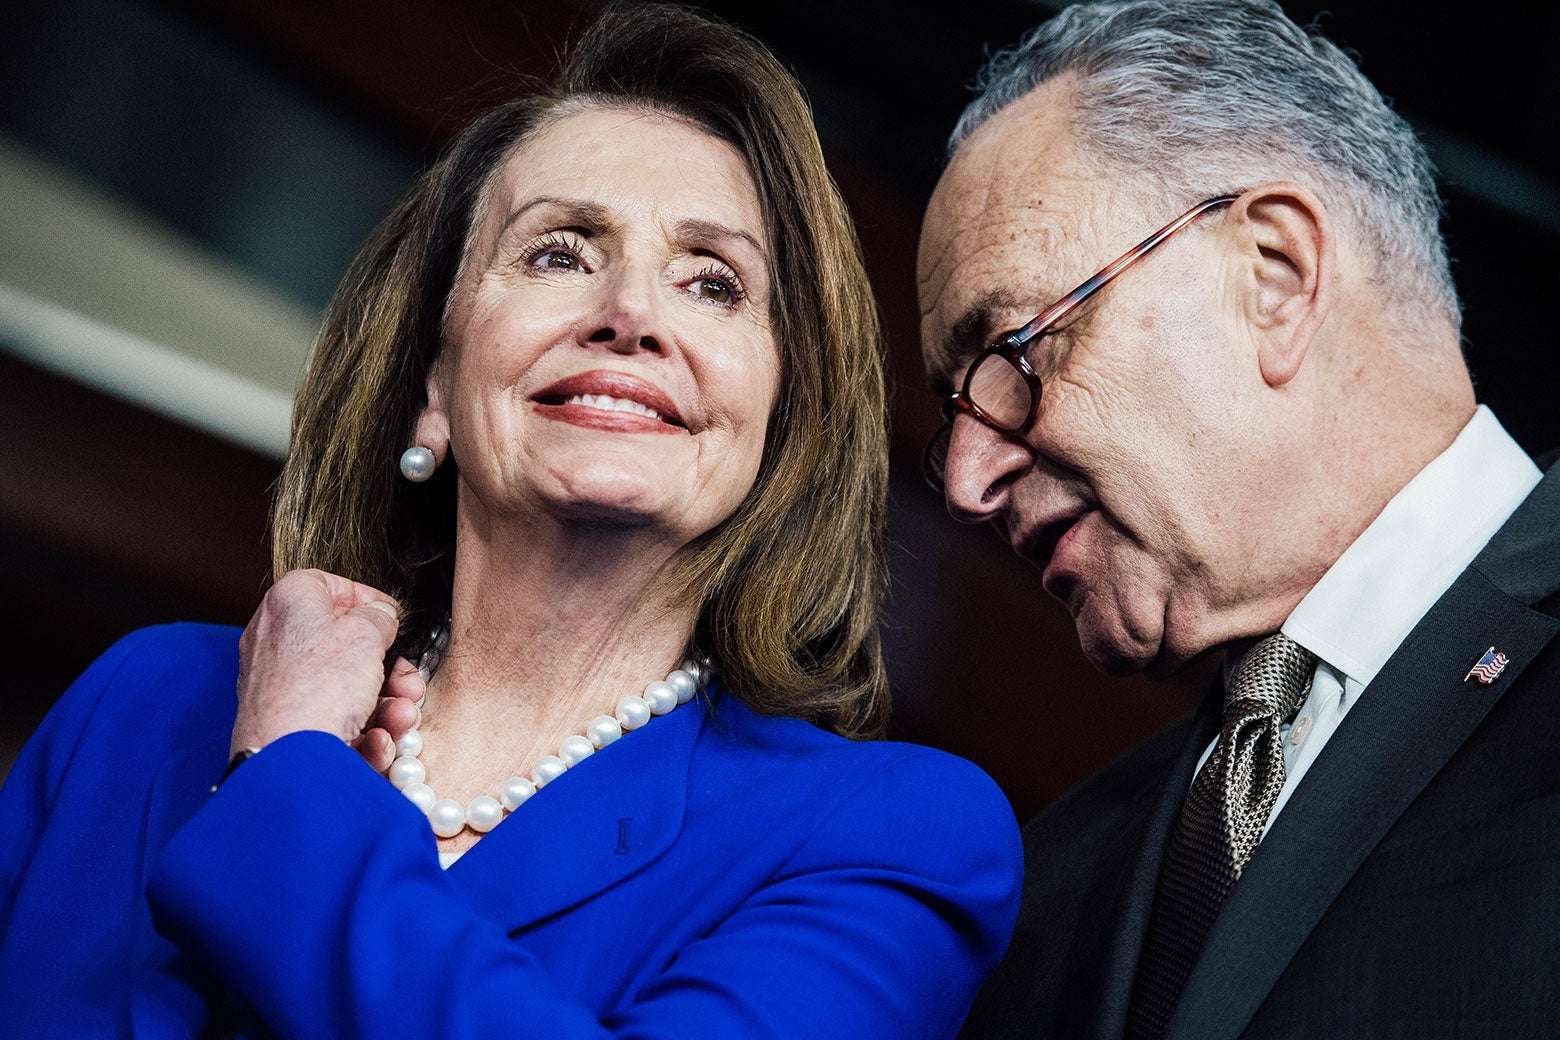 Nancy Pelosi and Chuck Schumer confer.